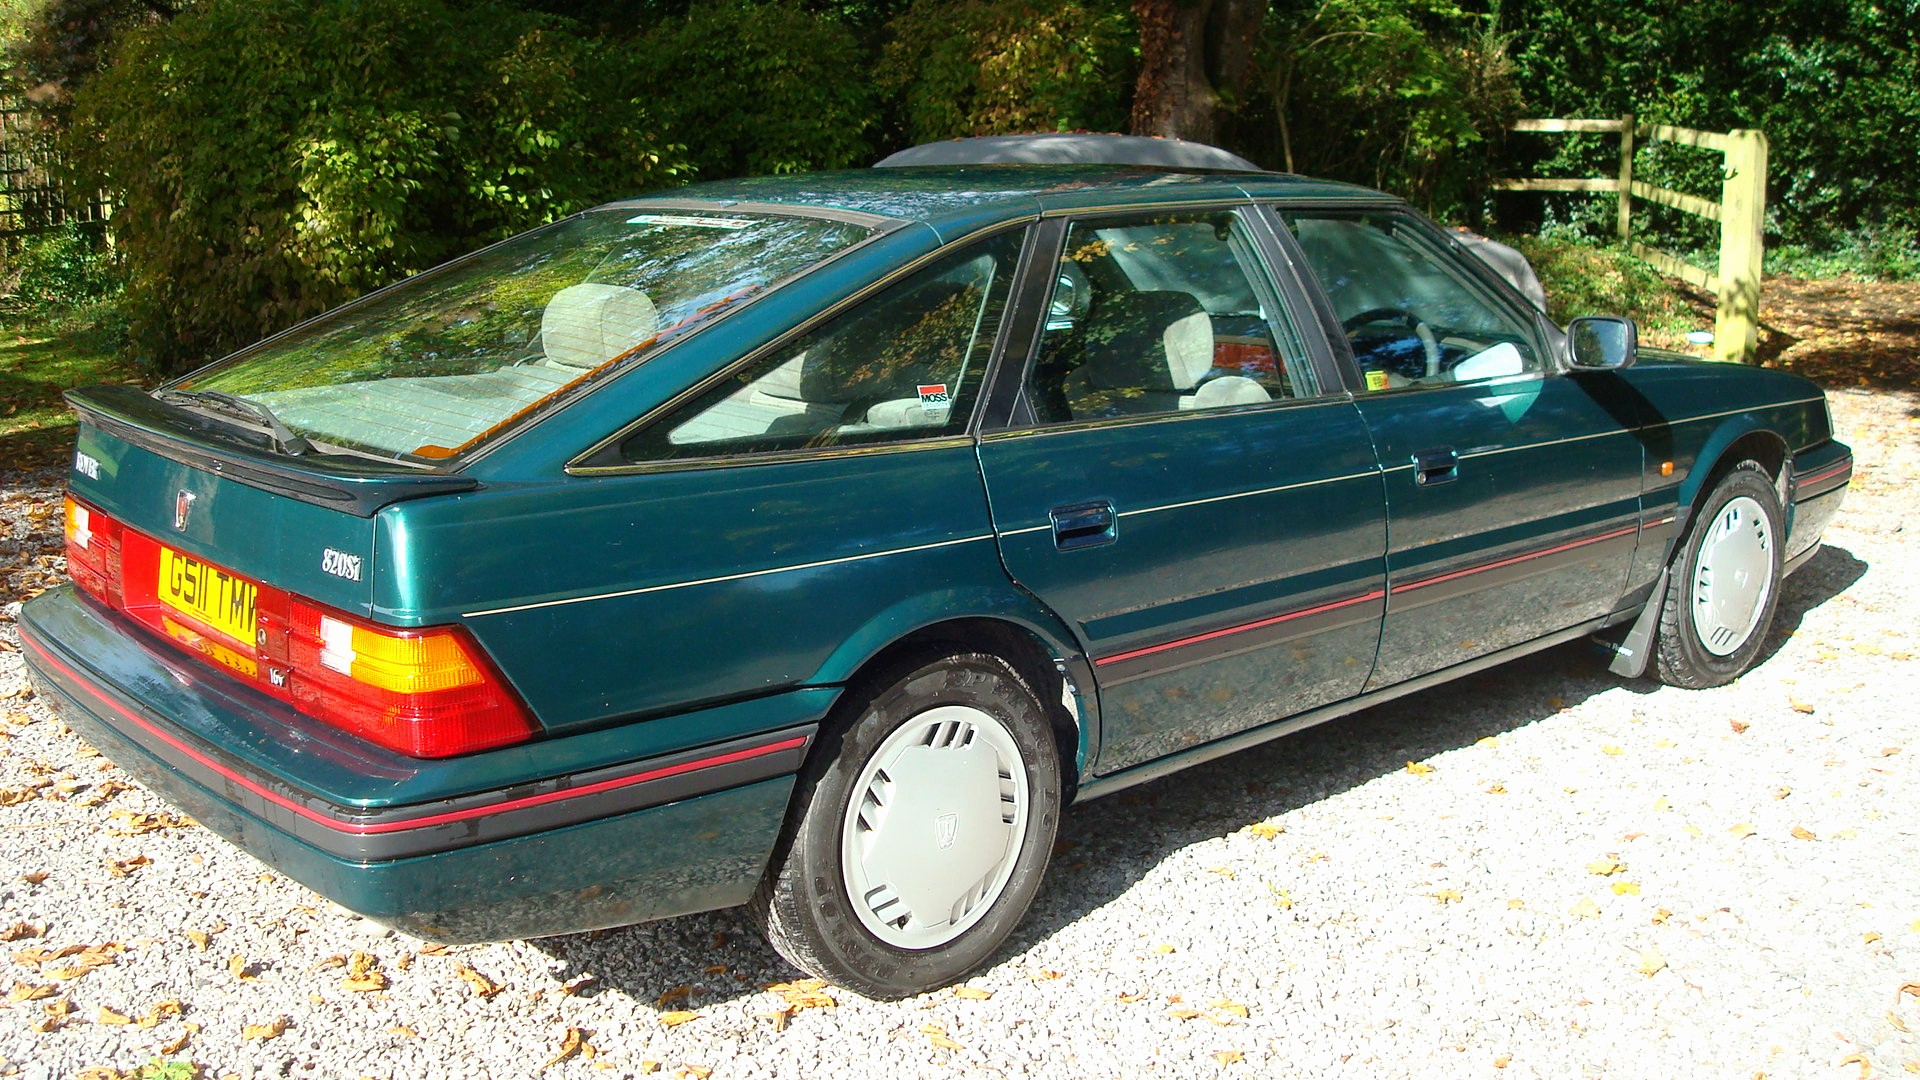 Cars Com Bill Of Sale New Rover 820si Fastback Series 1 Manual 44k Miles From New